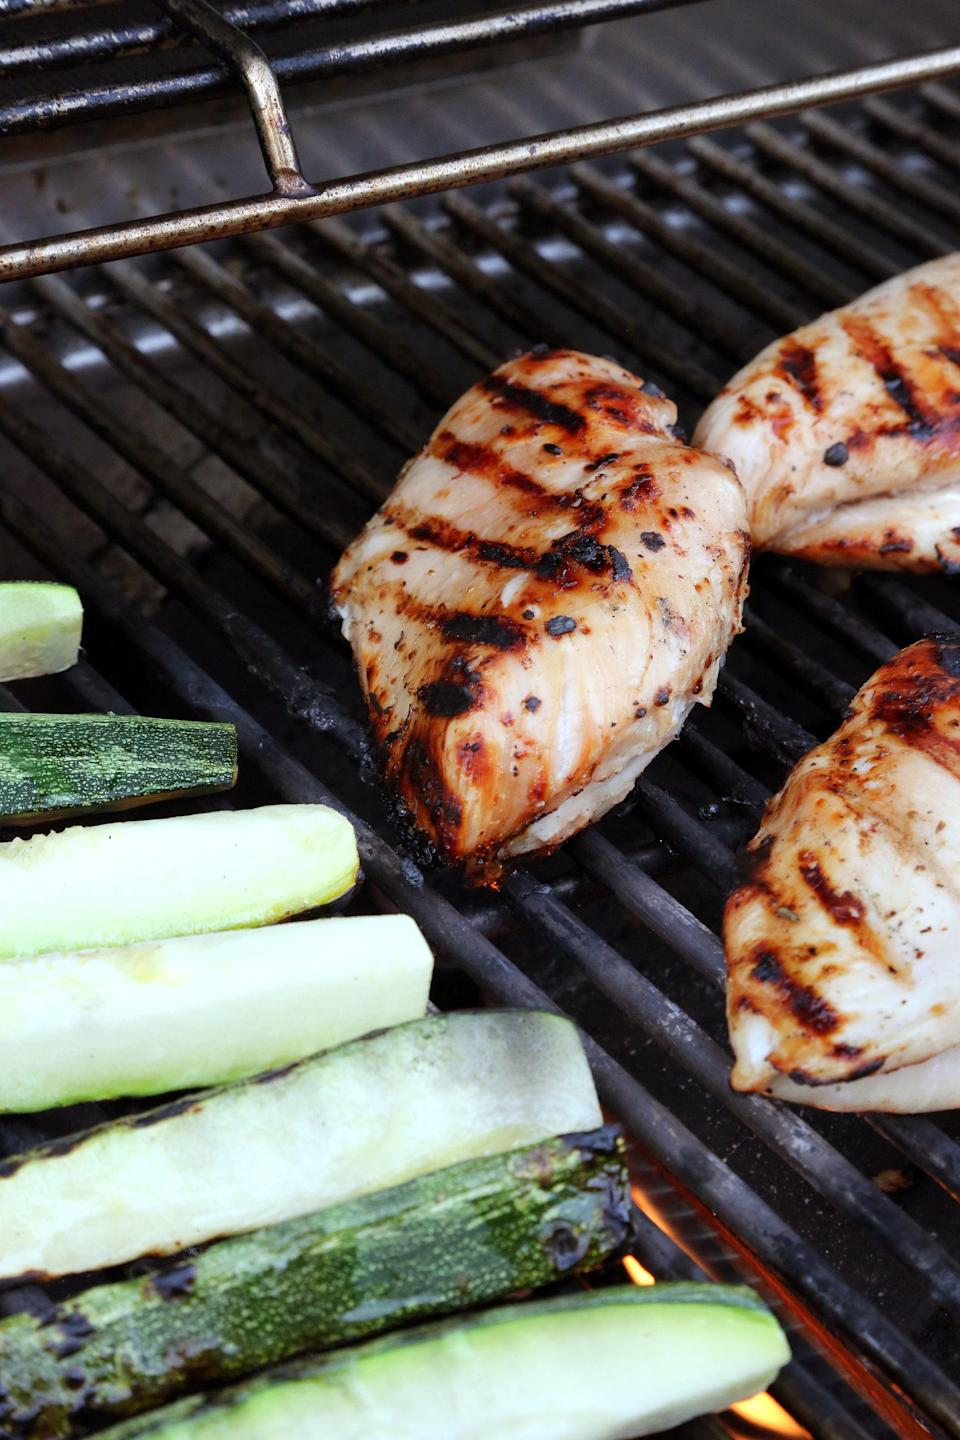 """<p>The key to keeping grilled chicken breasts completely juicy is to brine them for at least two hours and up to overnight. </p> <p><strong>Get the recipe:</strong> <a href=""""https://www.popsugar.com/food/Easy-Grilled-Chicken-Breast-Recipe-37994095"""" class=""""link rapid-noclick-resp"""" rel=""""nofollow noopener"""" target=""""_blank"""" data-ylk=""""slk:beer-brined grilled chicken breasts"""">beer-brined grilled chicken breasts</a></p>"""